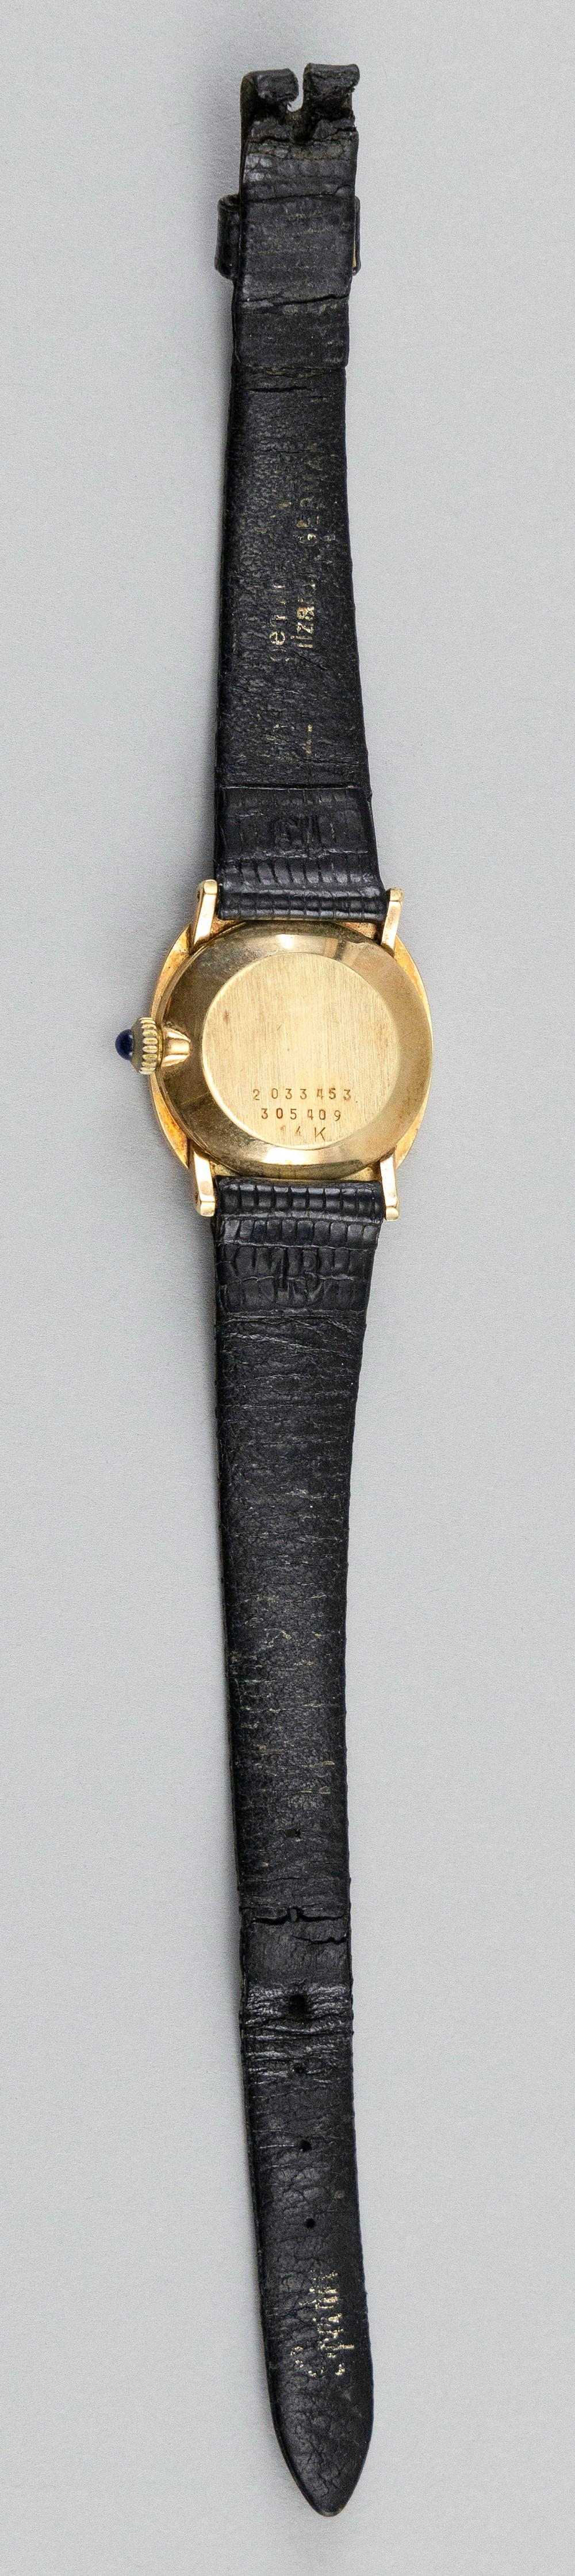 VINTAGE CARTIER 14KT GOLD LADY'S WRIST WATCH Case numbered 2033453 305409. Black dial with sticks and a